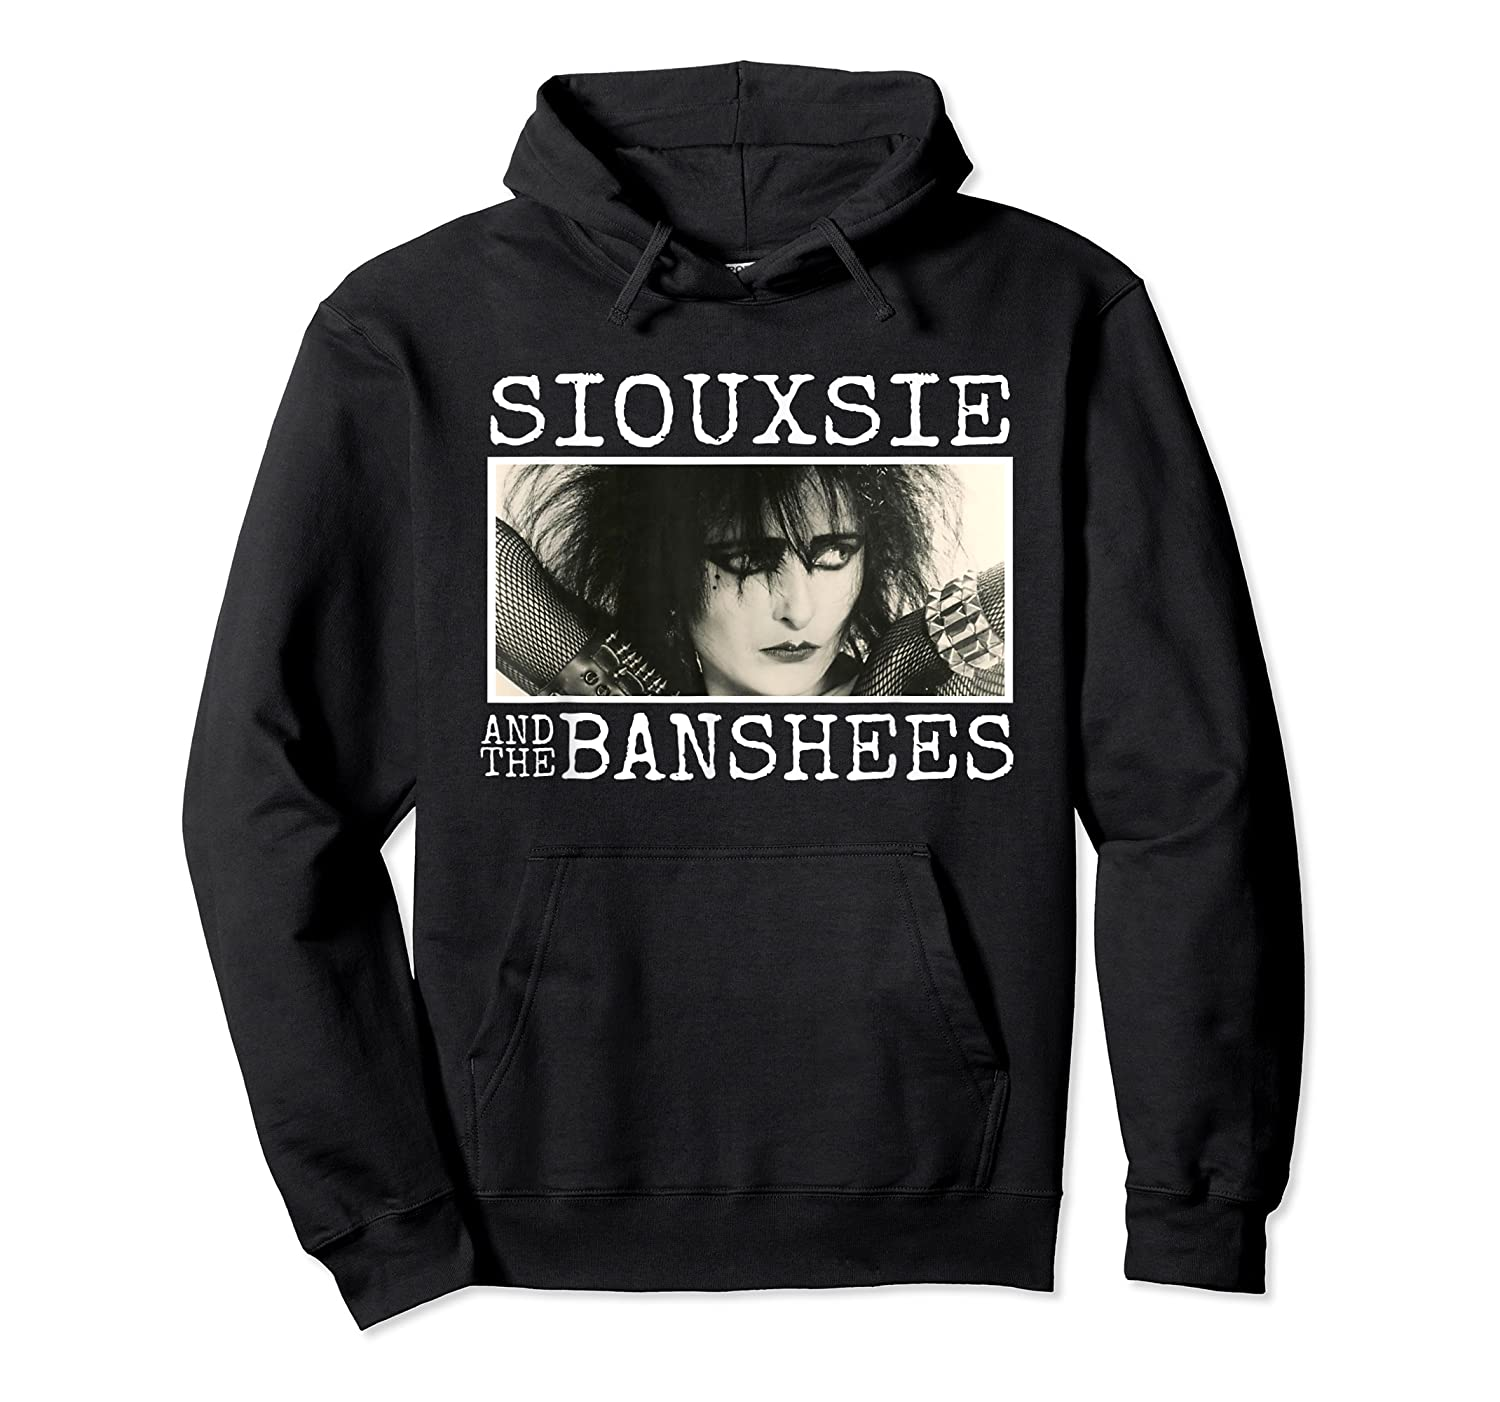 Siouxsie And The Banshee Siouxsie Sioux T Shirt Unisex Pullover Hoodie